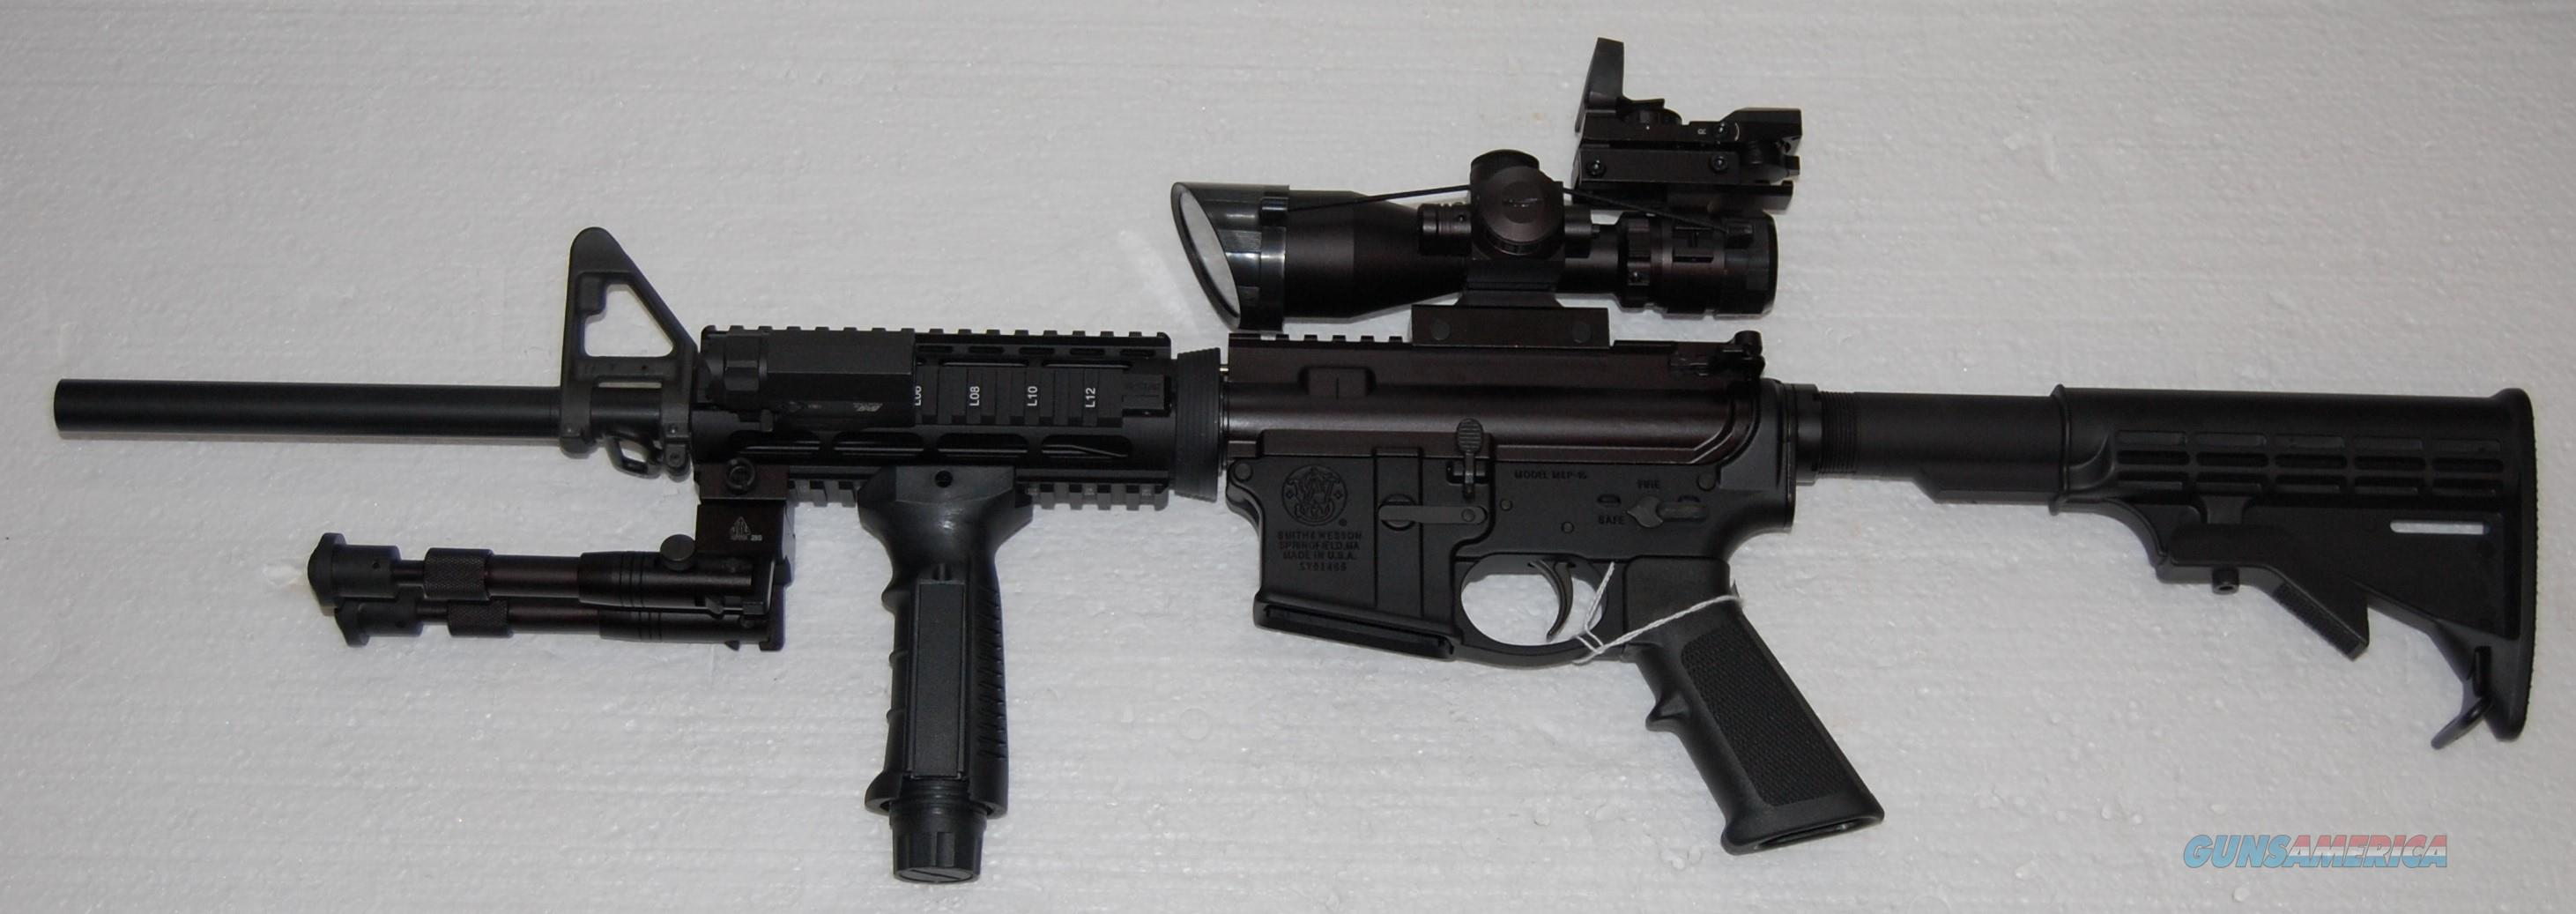 Smith&Wesson M&P 15  Guns > Rifles > Smith & Wesson Rifles > M&P